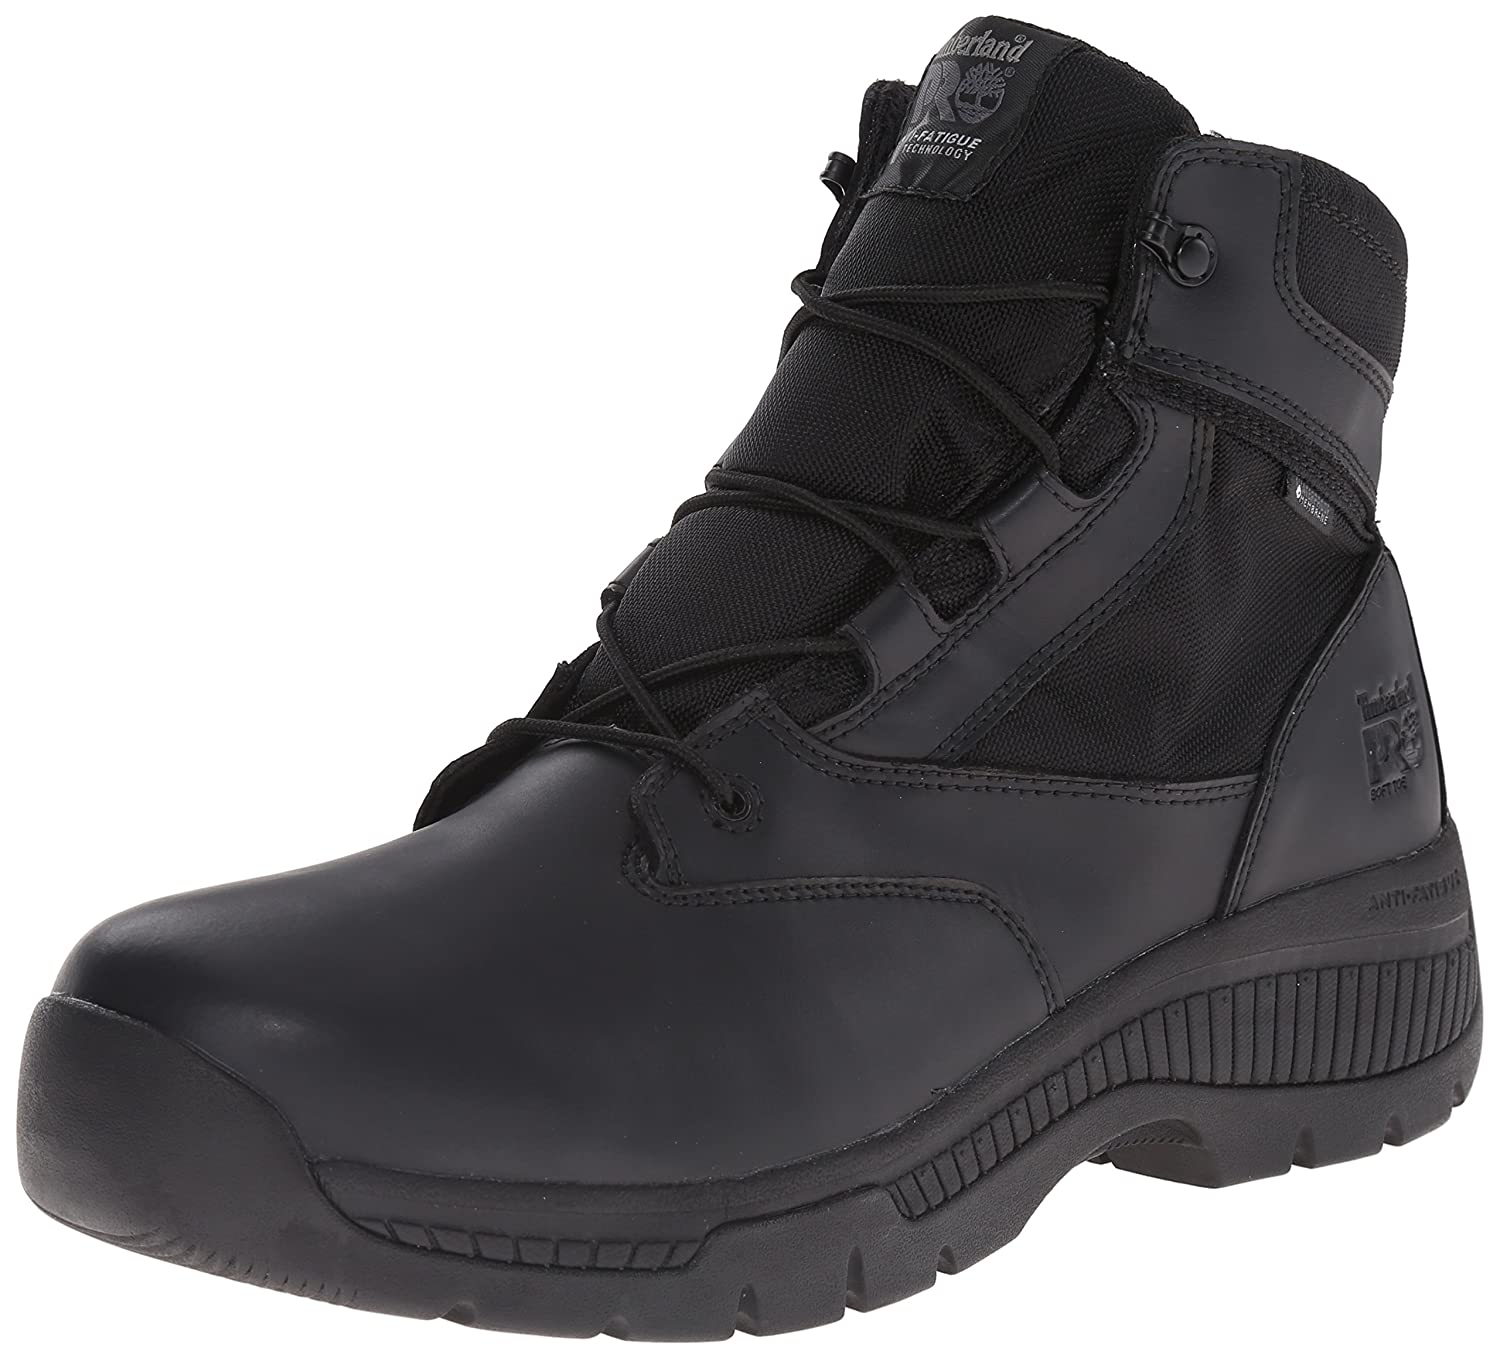 Timberland PRO メンズ B00RKM68HU 10.5 D(M) US|Black Smooth Leather Ballistic Nylon Black Smooth Leather Ballistic Nylon 10.5 D(M) US